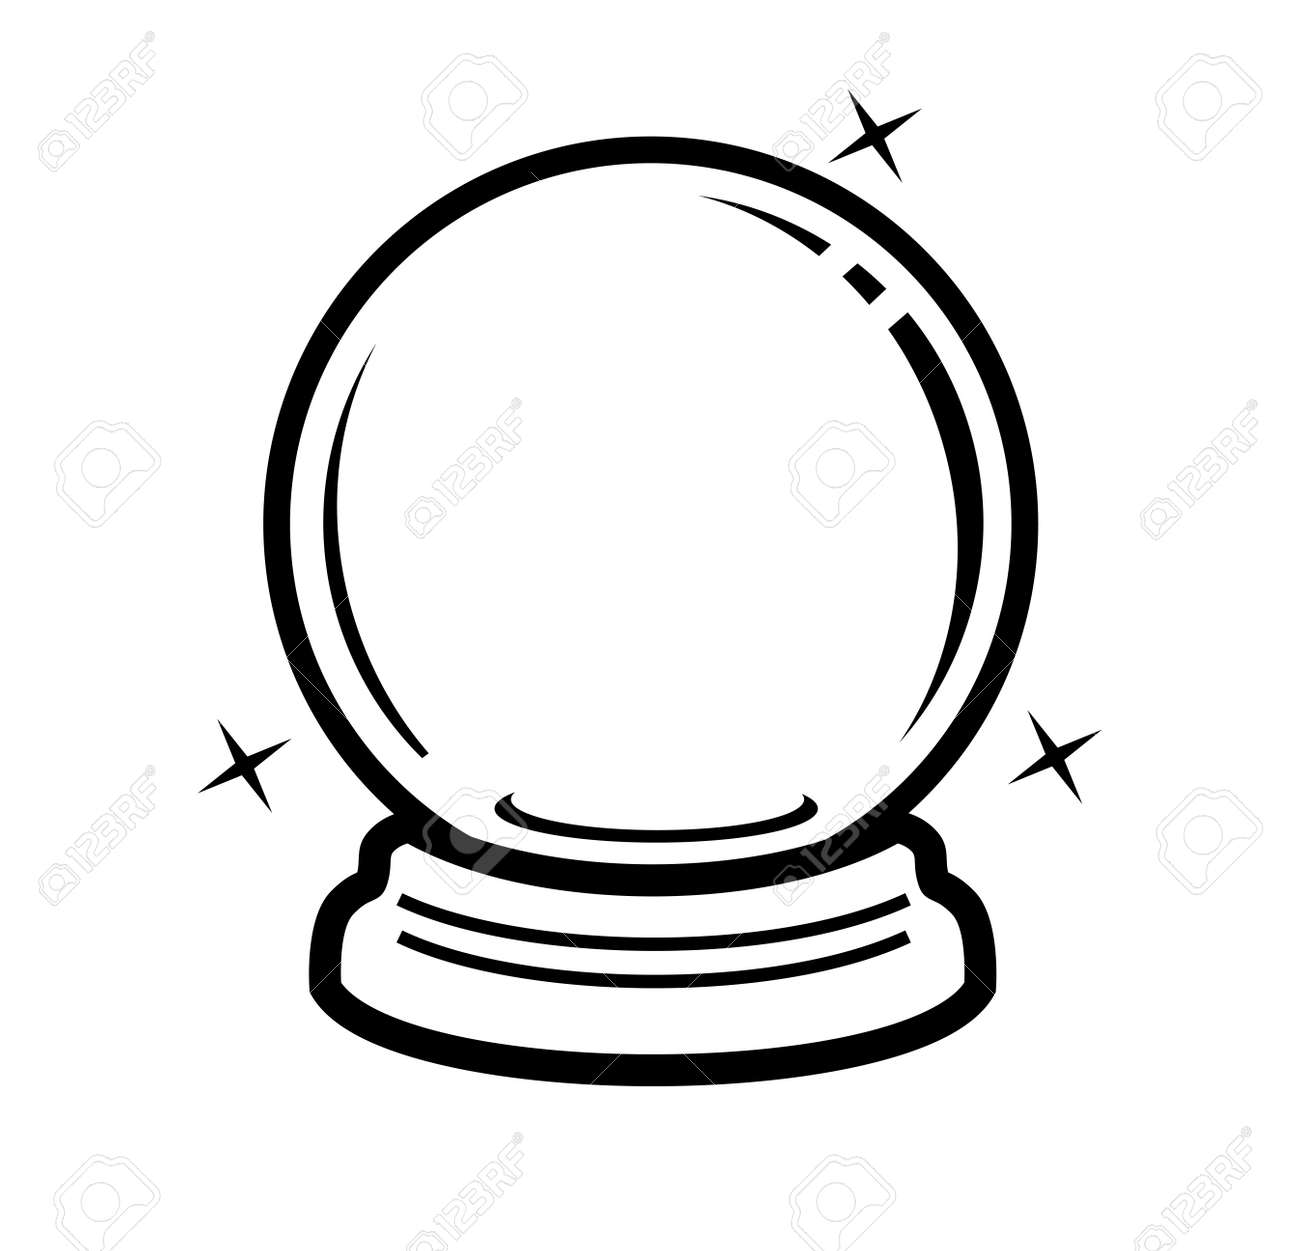 vector black crystal ball icon on white royalty free cliparts rh 123rf com free clipart crystal ball free crystal ball images clip art